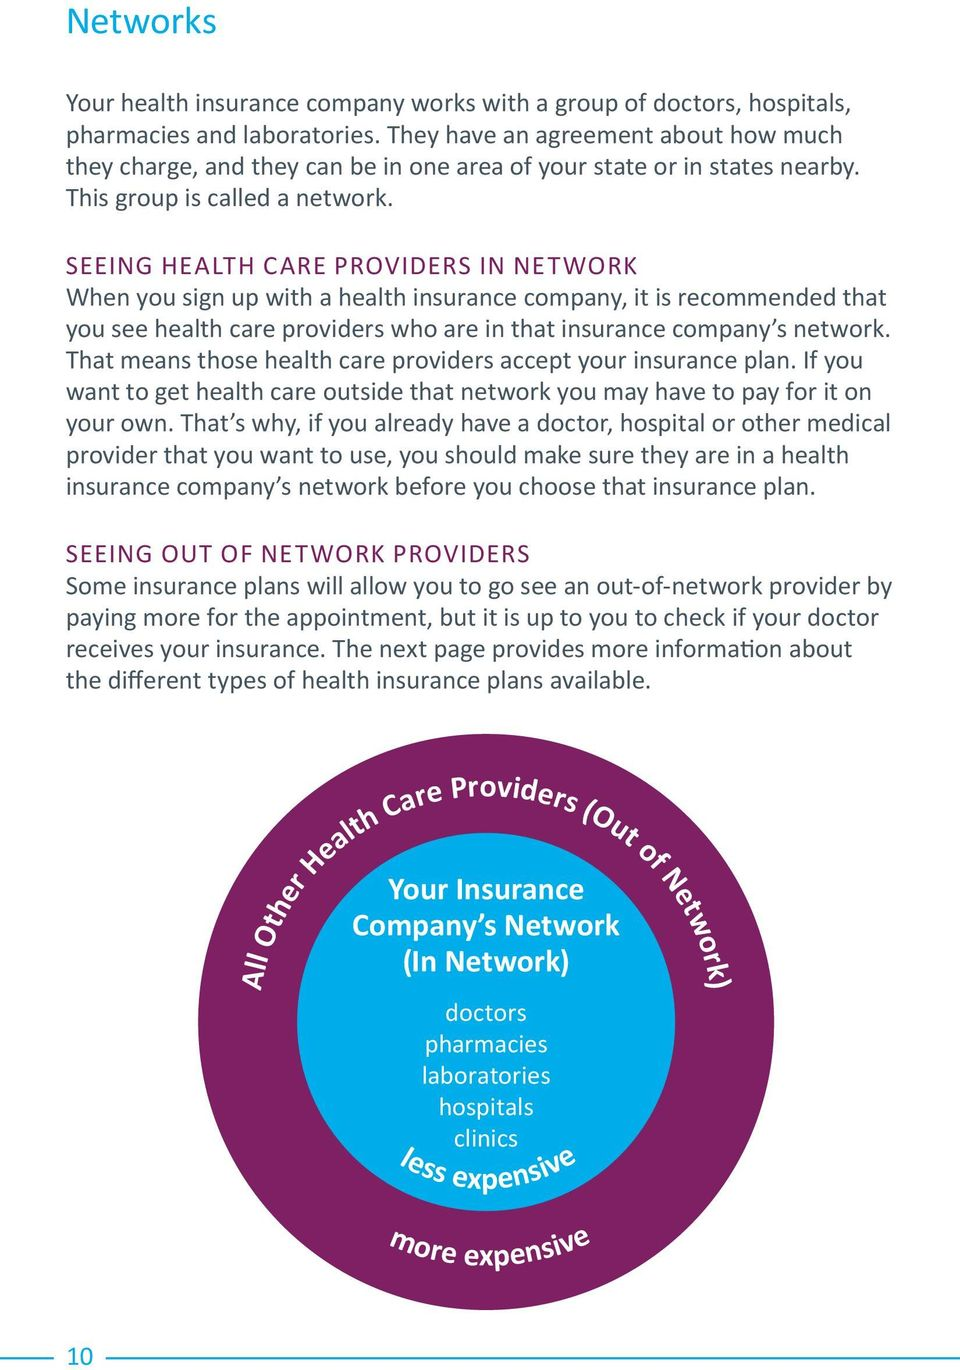 SEEING HEALTH CARE PROVIDERS IN NETWORK When you sign up with a health insurance company, it is recommended that you see health care providers who are in that insurance company s network.